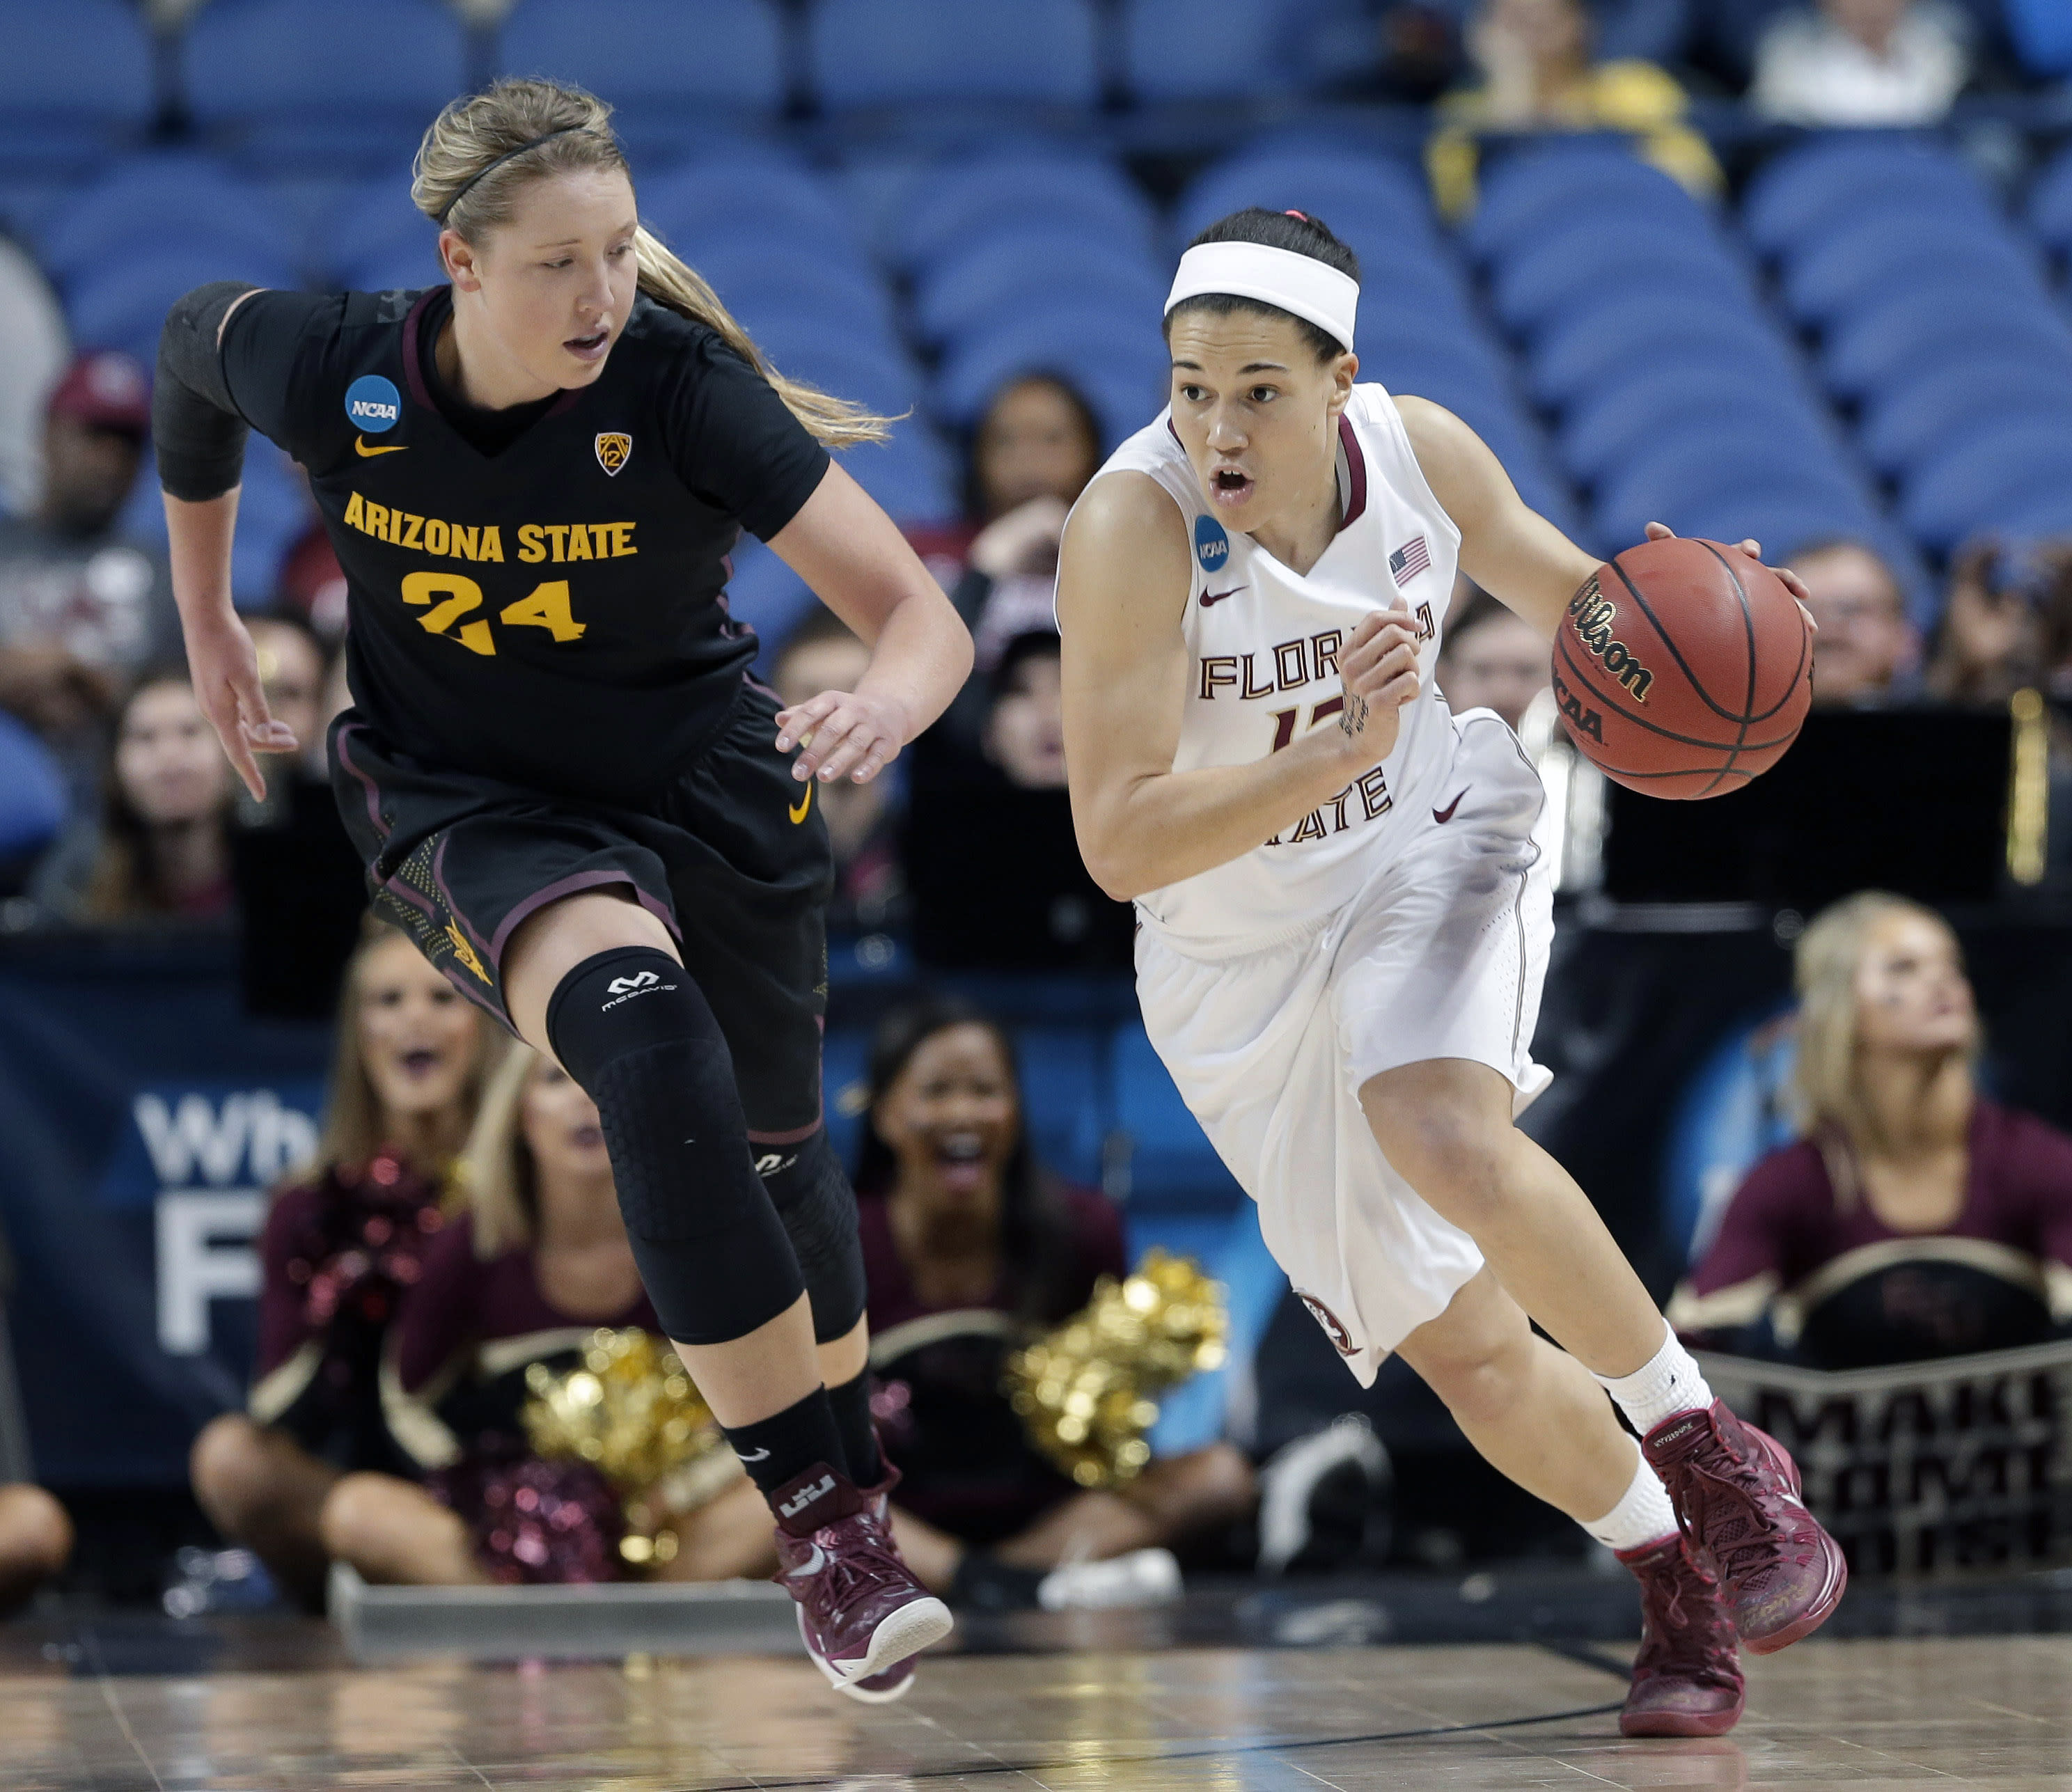 FSU women reach Elite Eight by beating Arizona St, 66-65